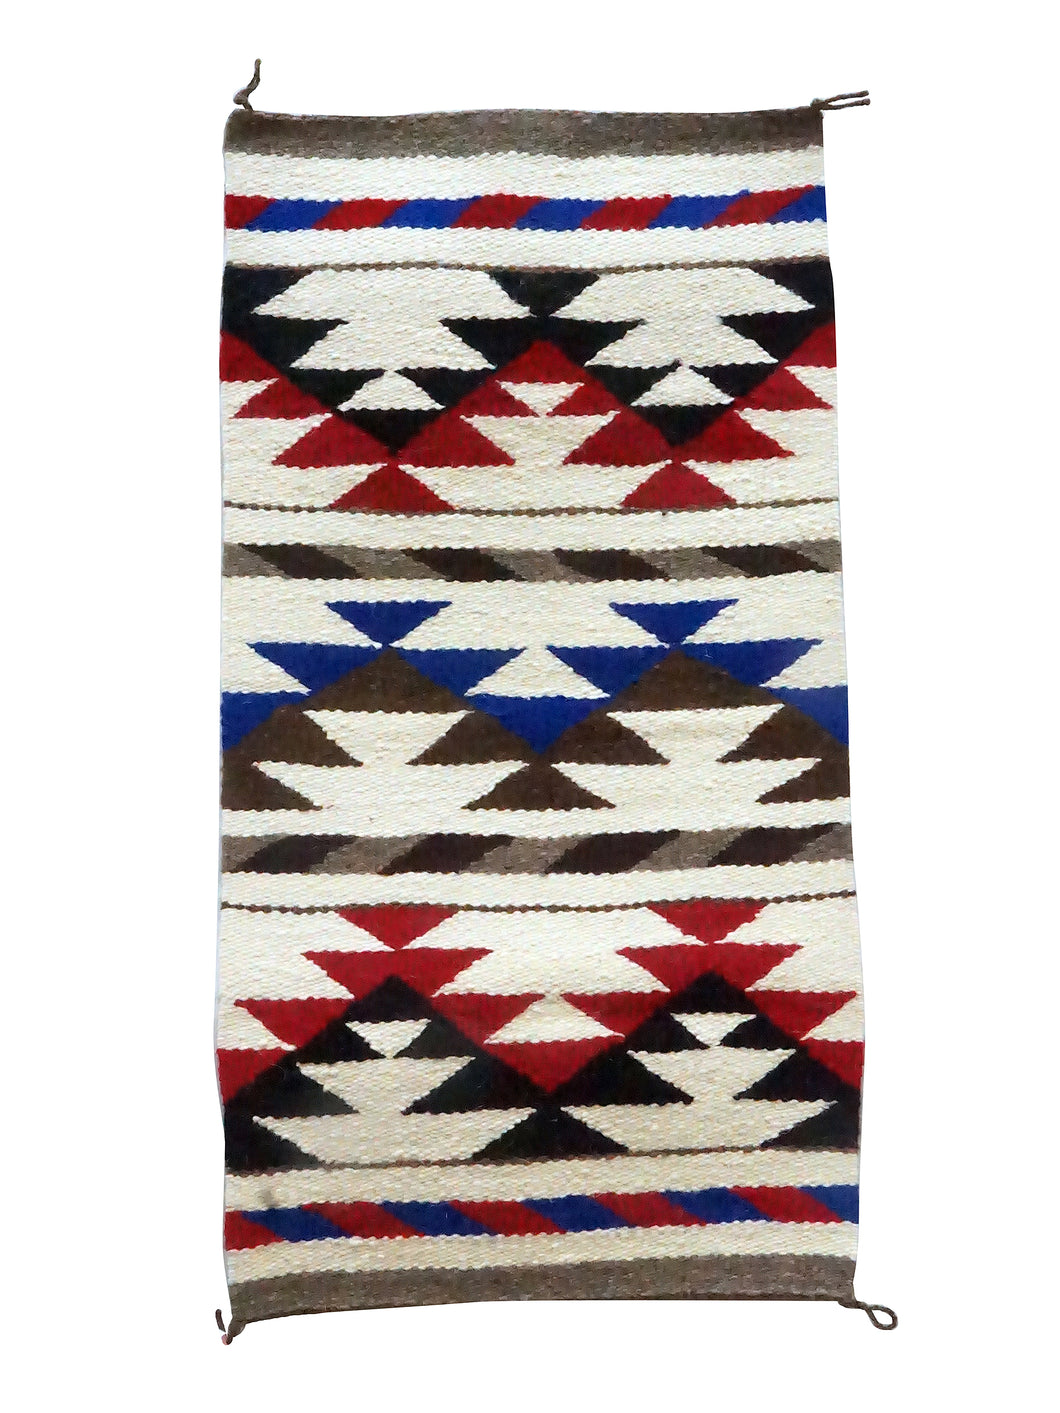 Mary Chee, Gallup Throw Rug, White, Red, Black, Navajo Handwoven, 36